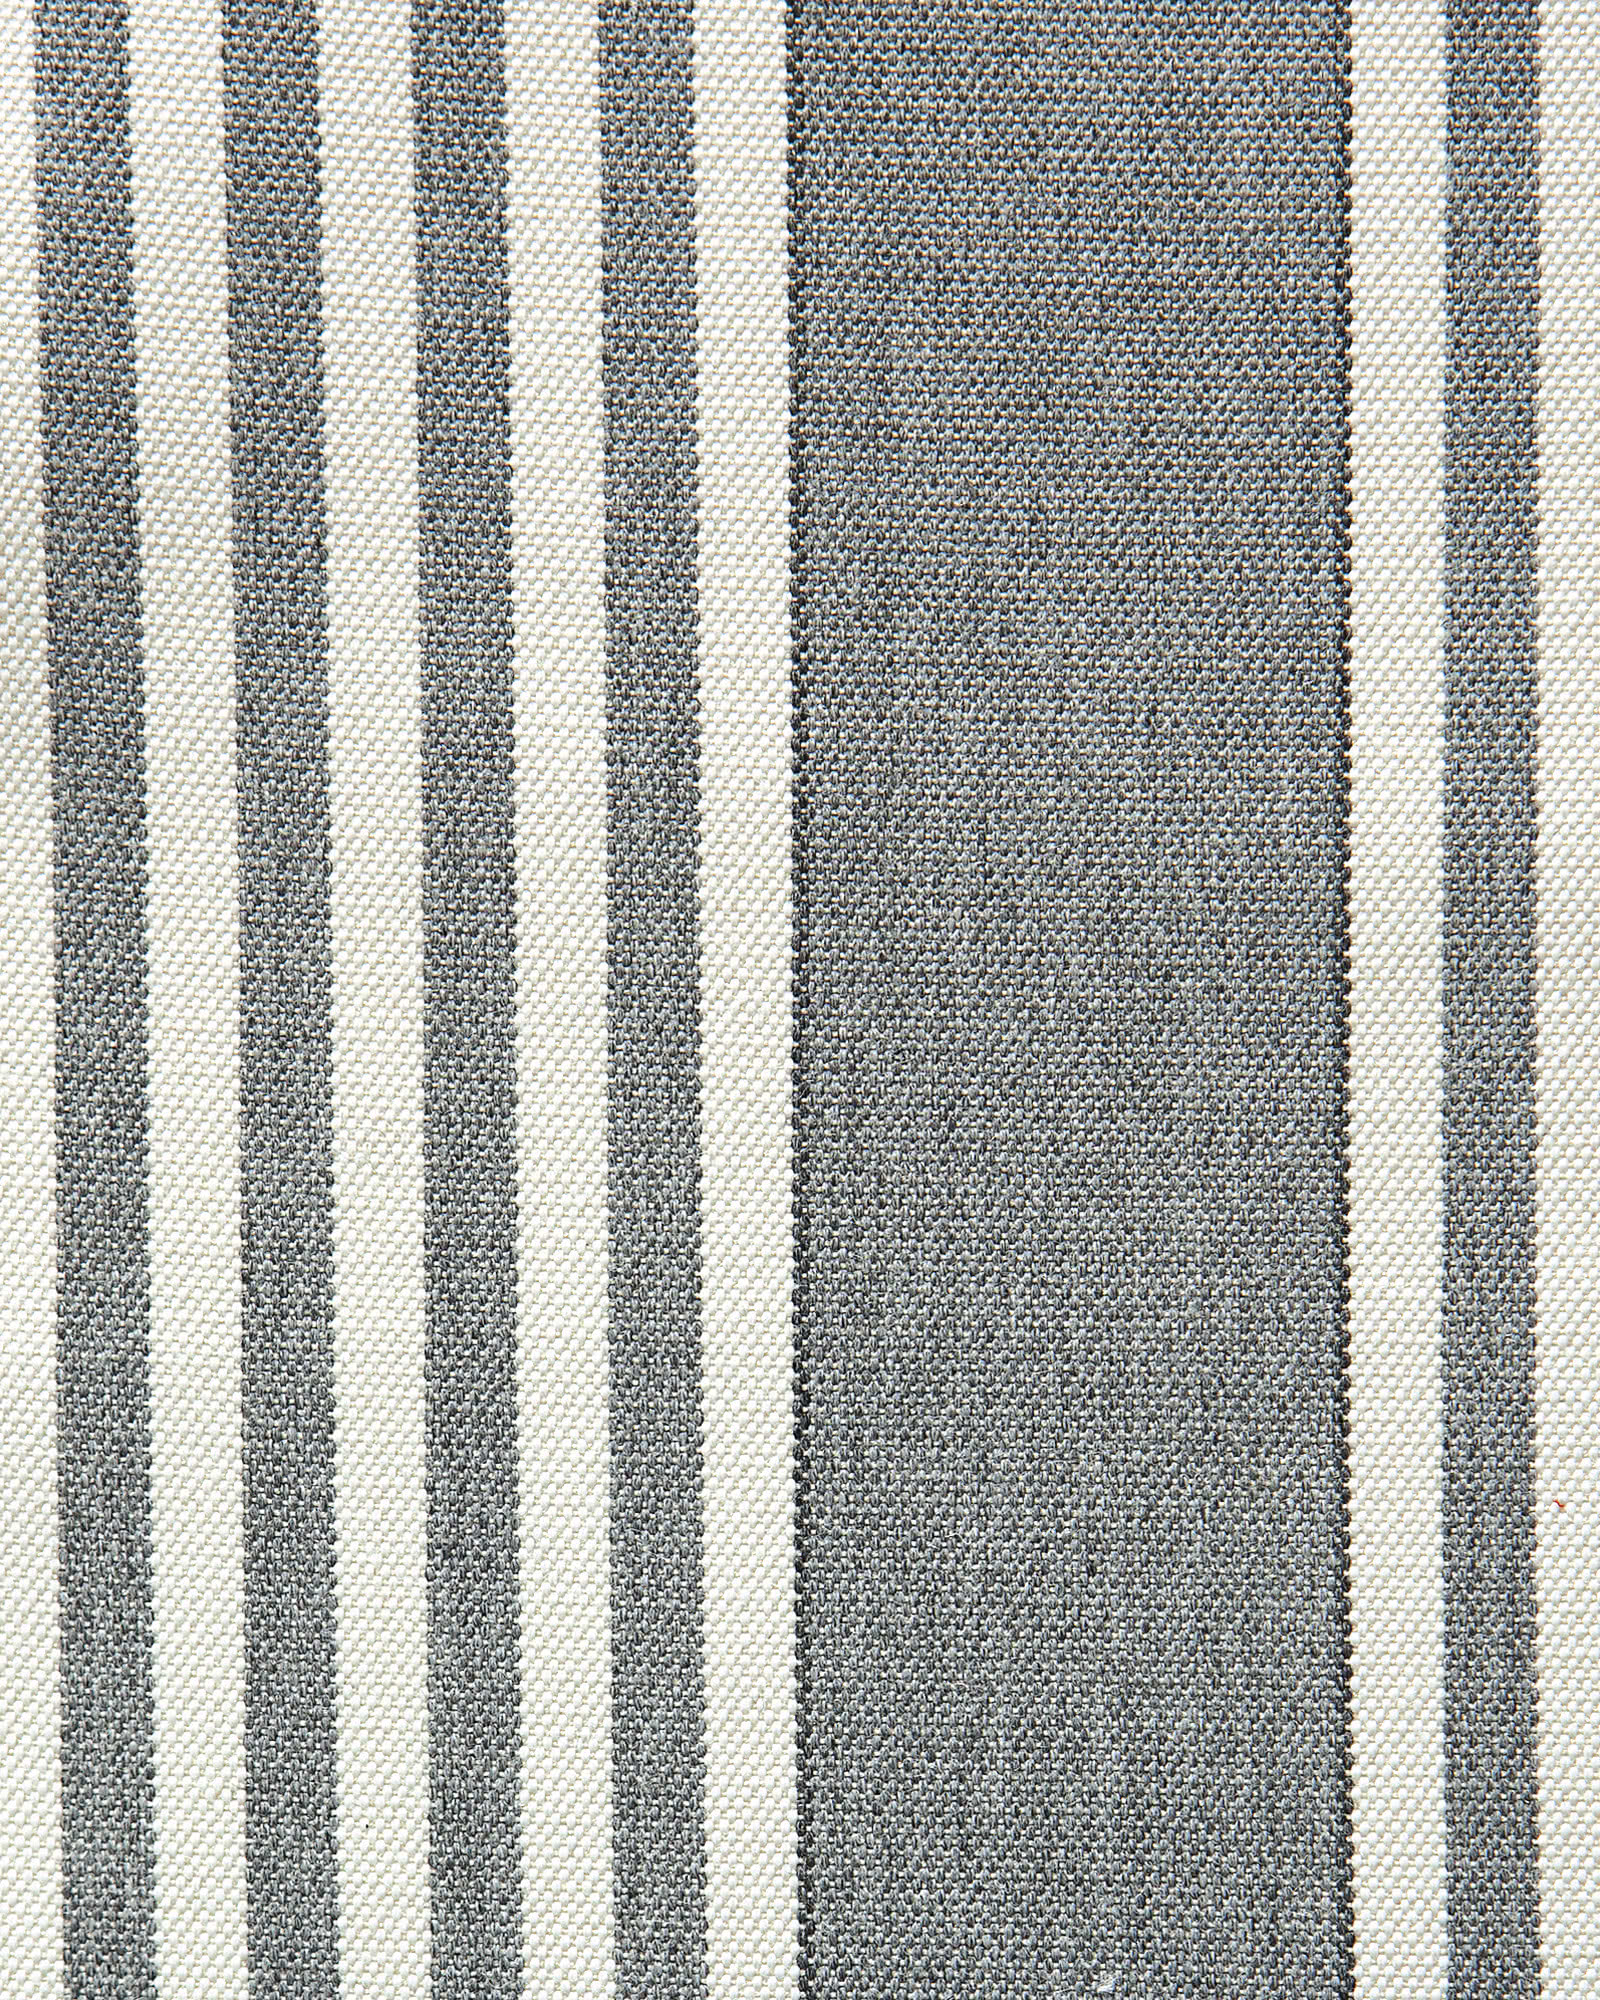 Perennials® Cabana Stripe Fabric, Platinum